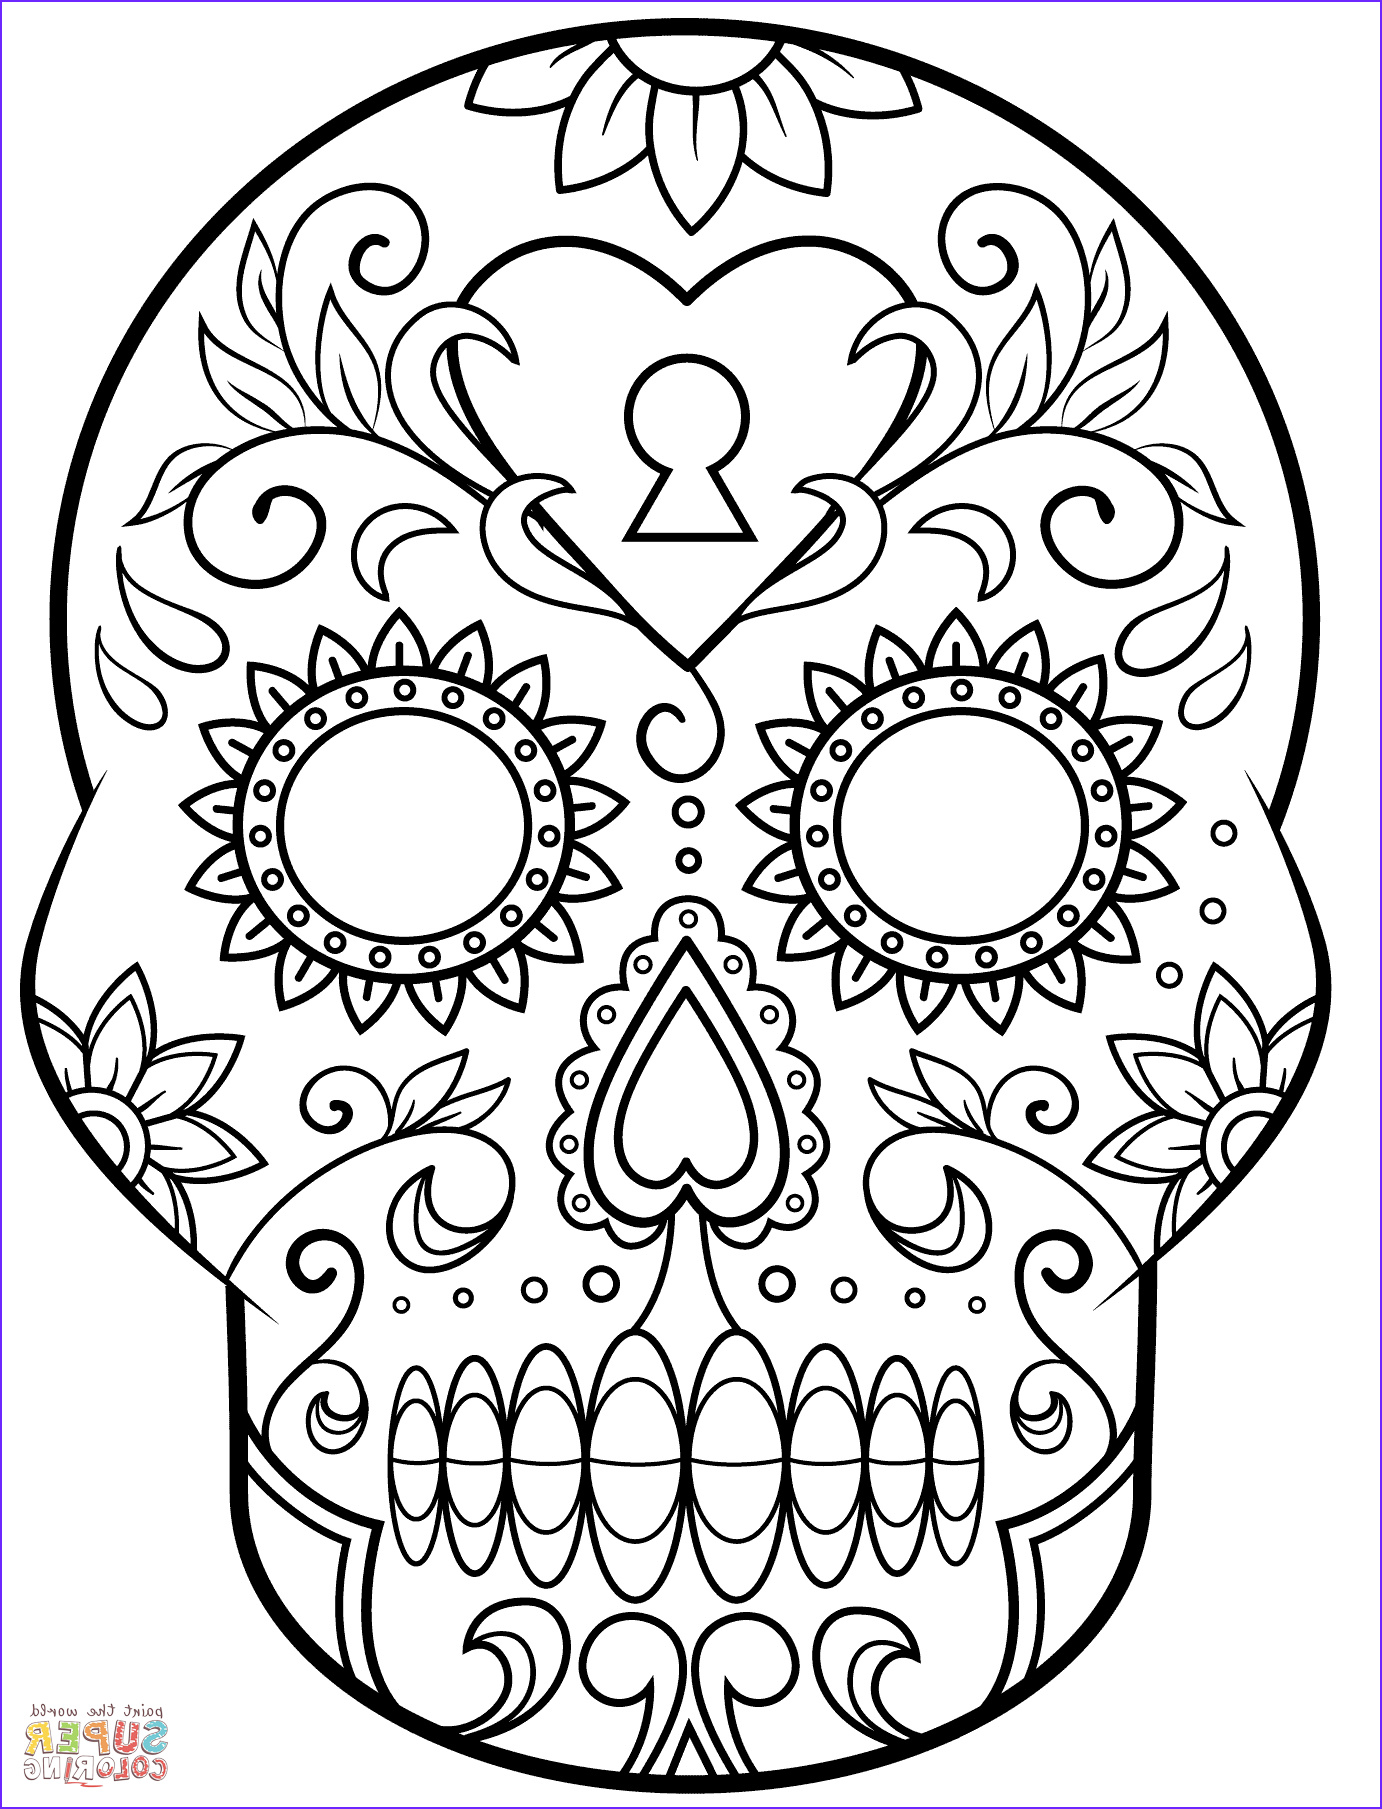 Sugar Skull Coloring Pages Awesome Collection Day Of the Dead Sugar Skull Coloring Page